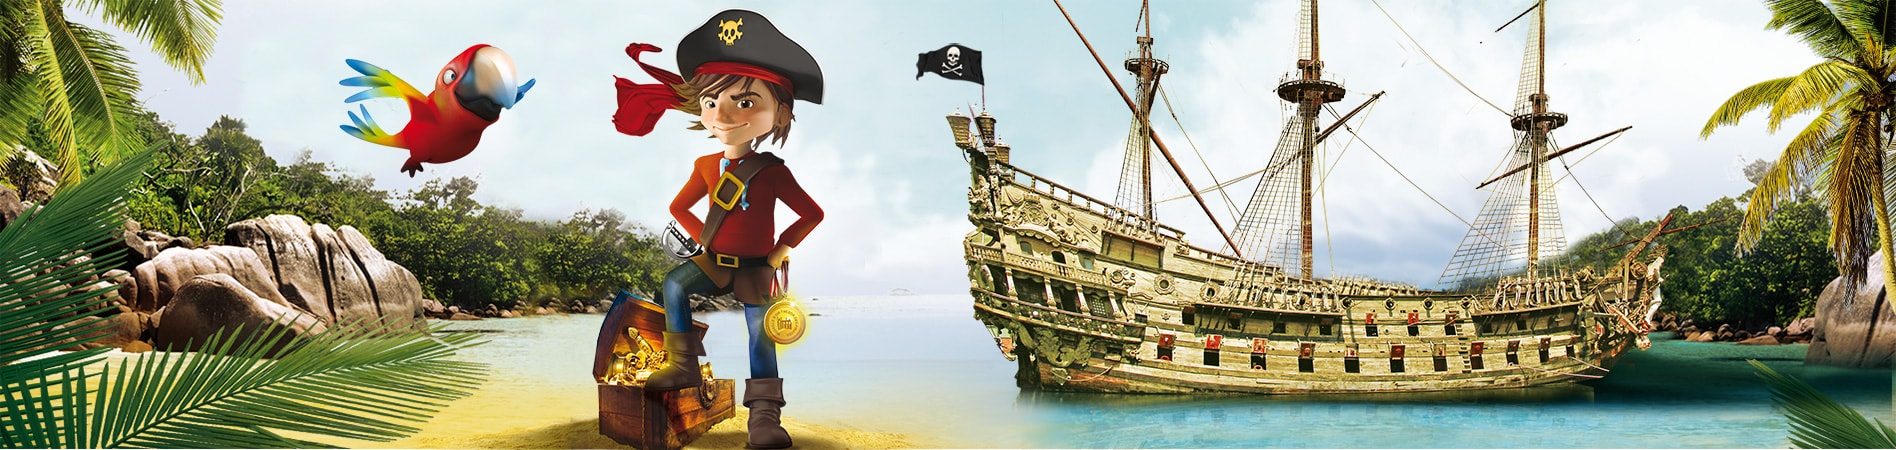 parcours-pirate